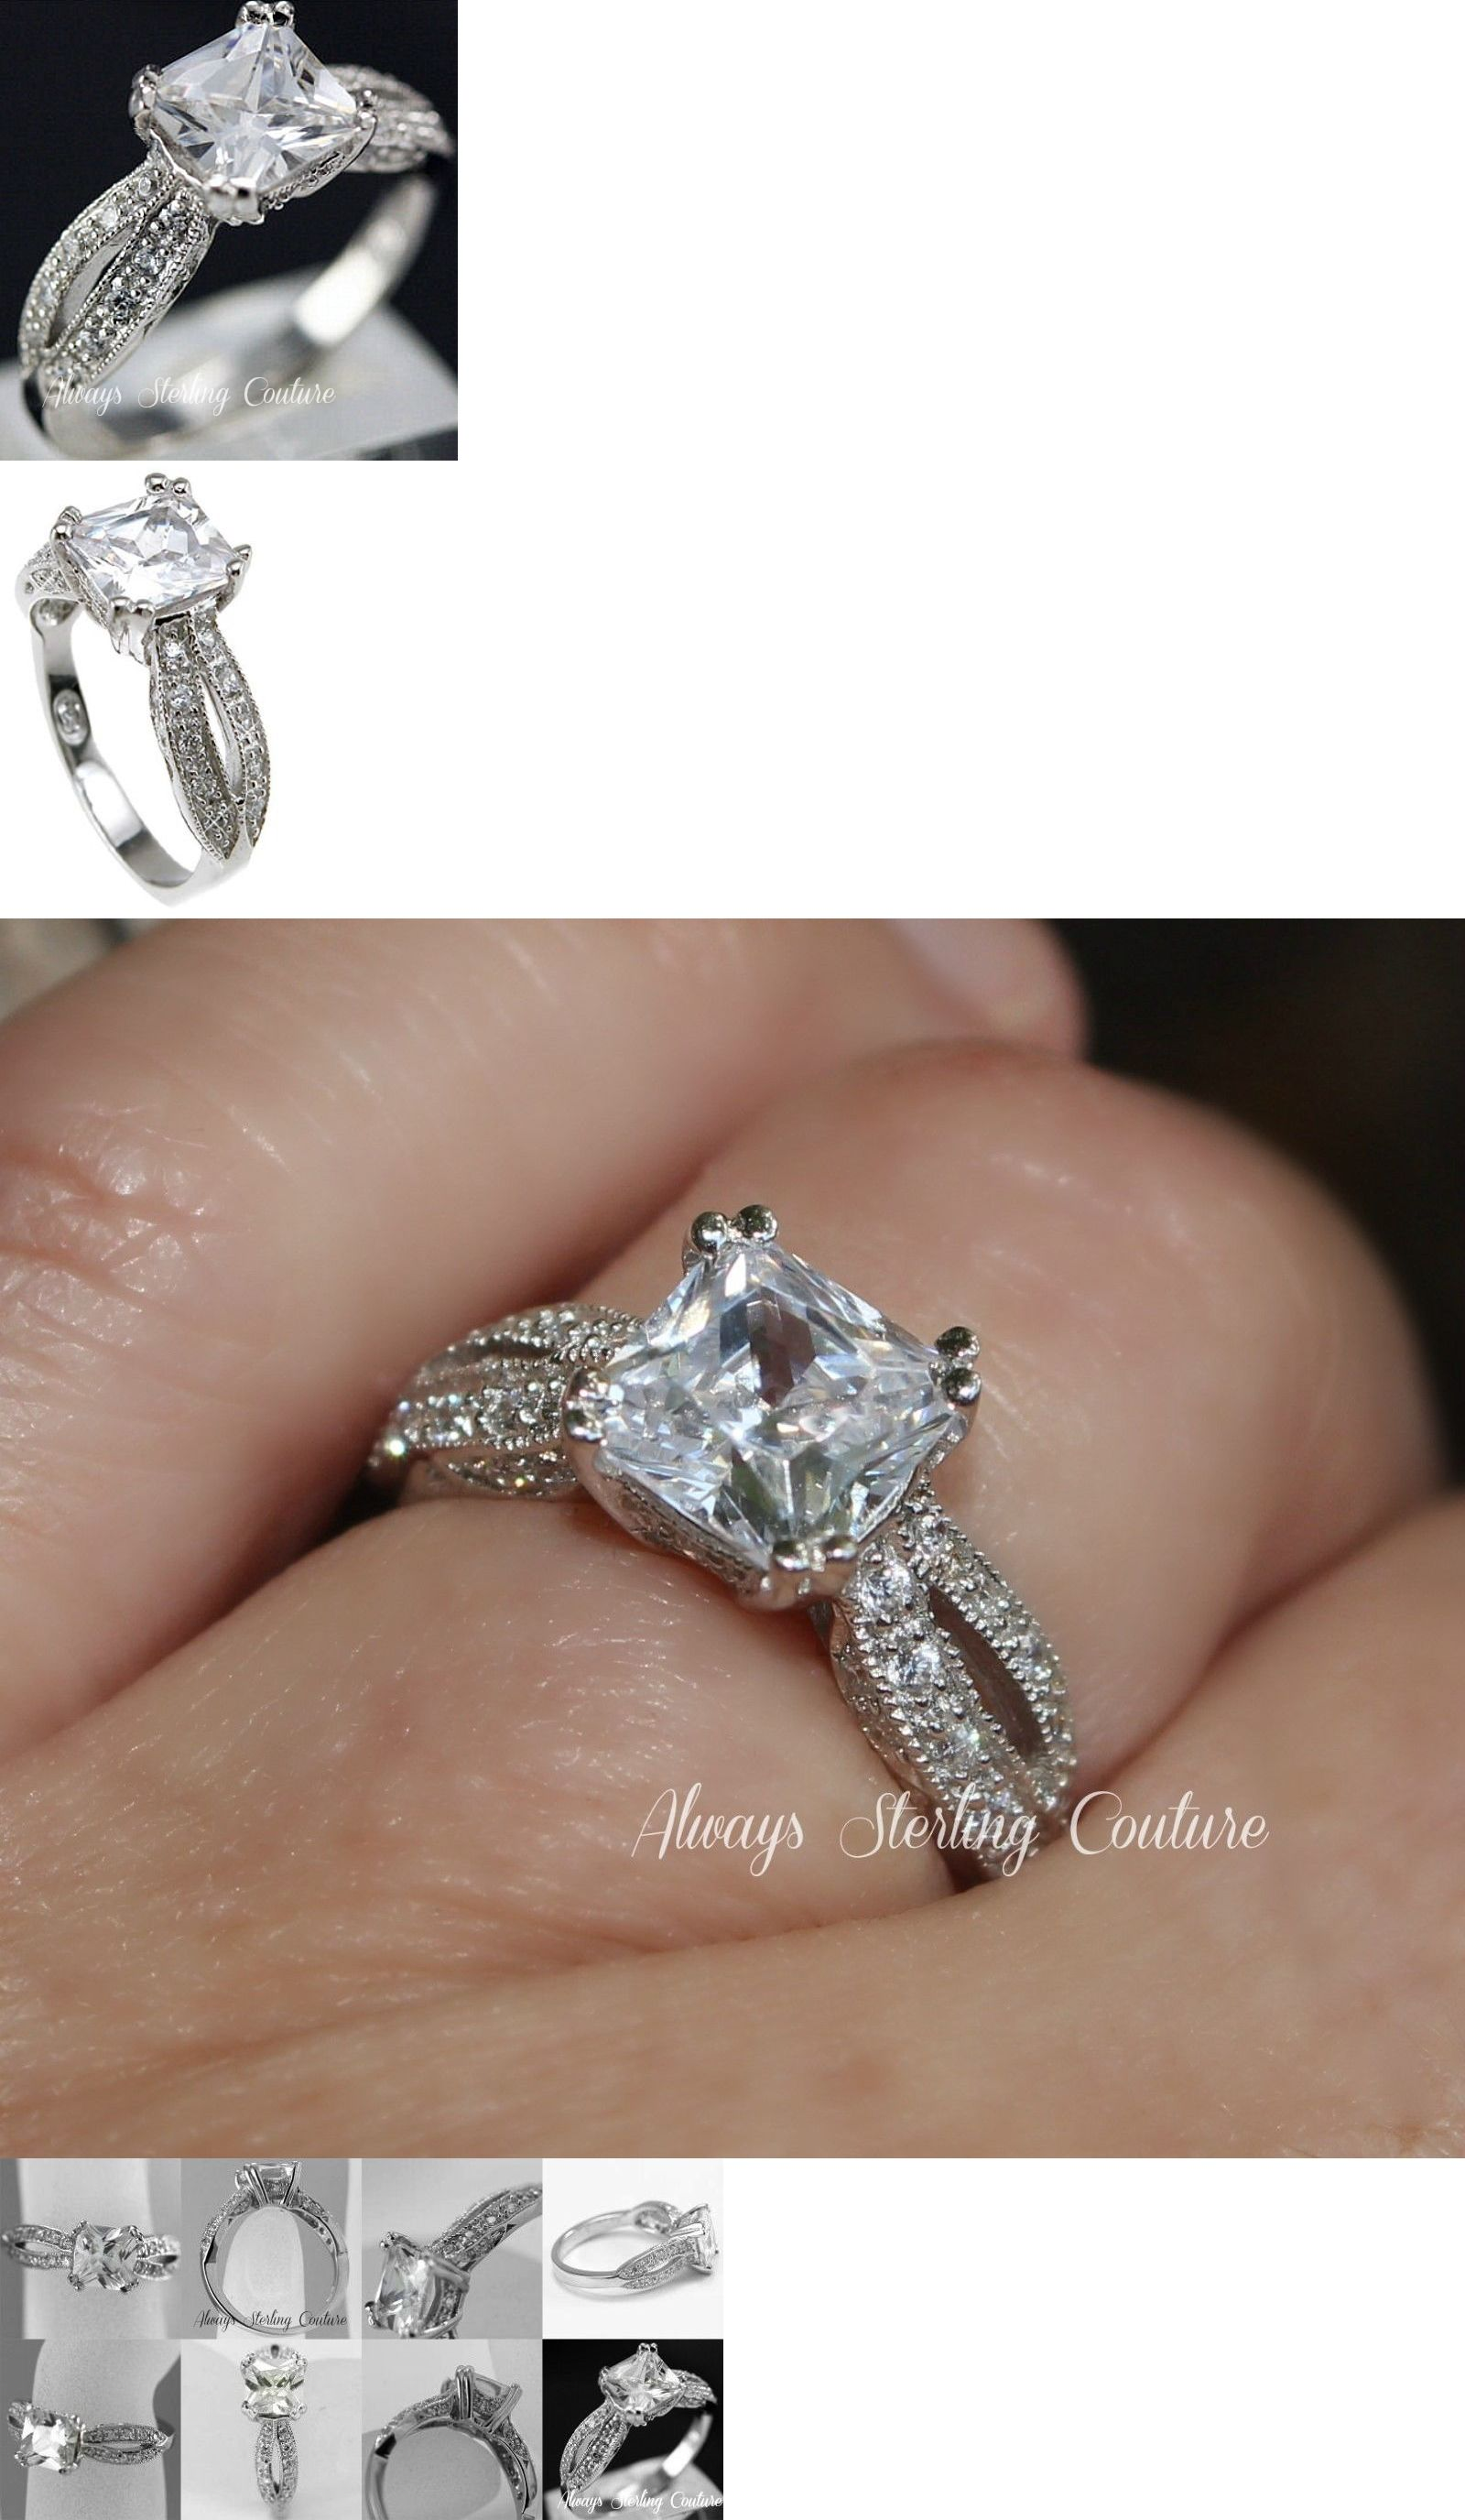 Other engagement rings platinum sterling silver